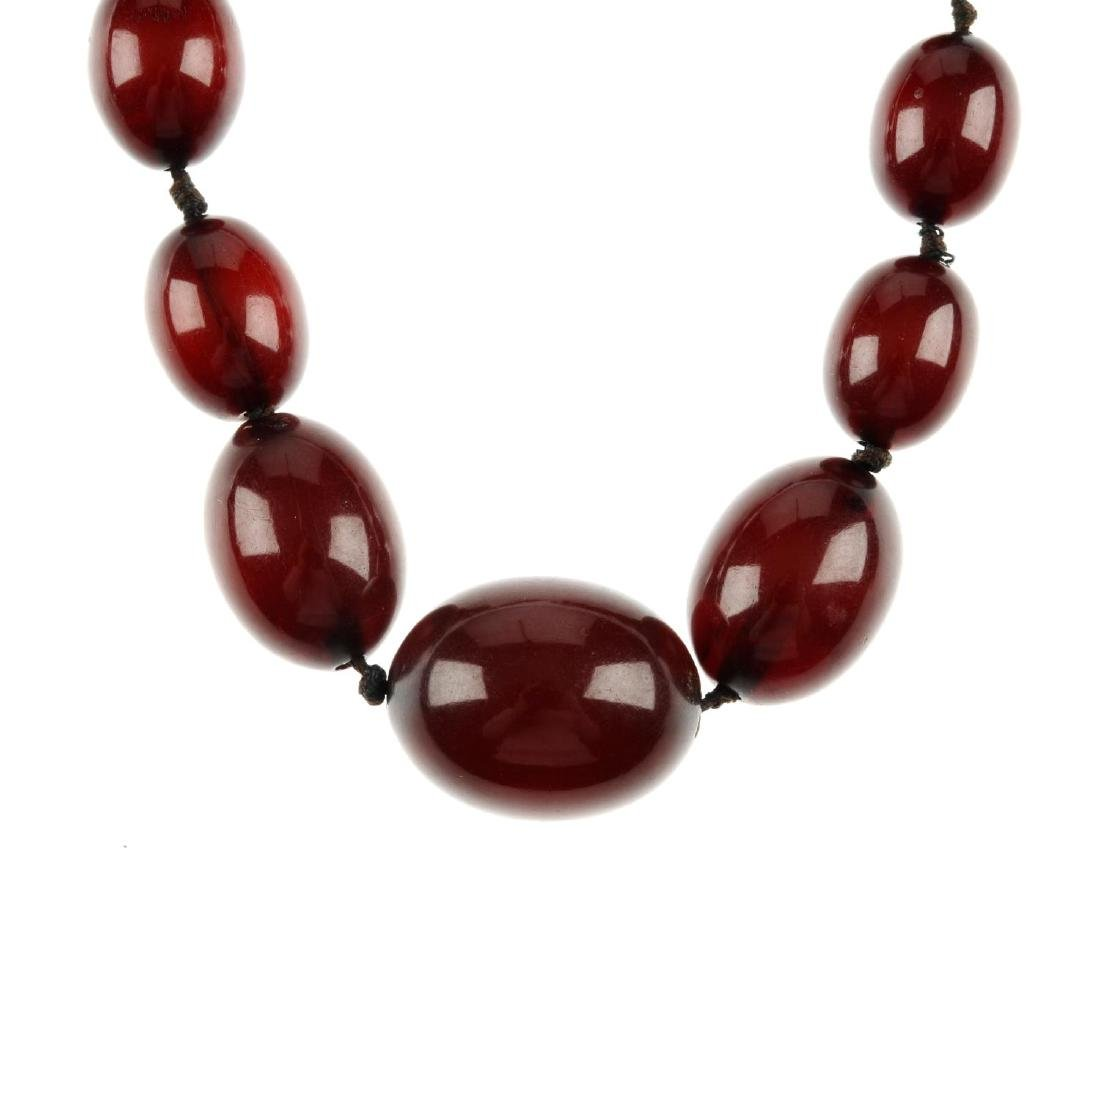 A bakelite bead necklace. Designed as a single row of